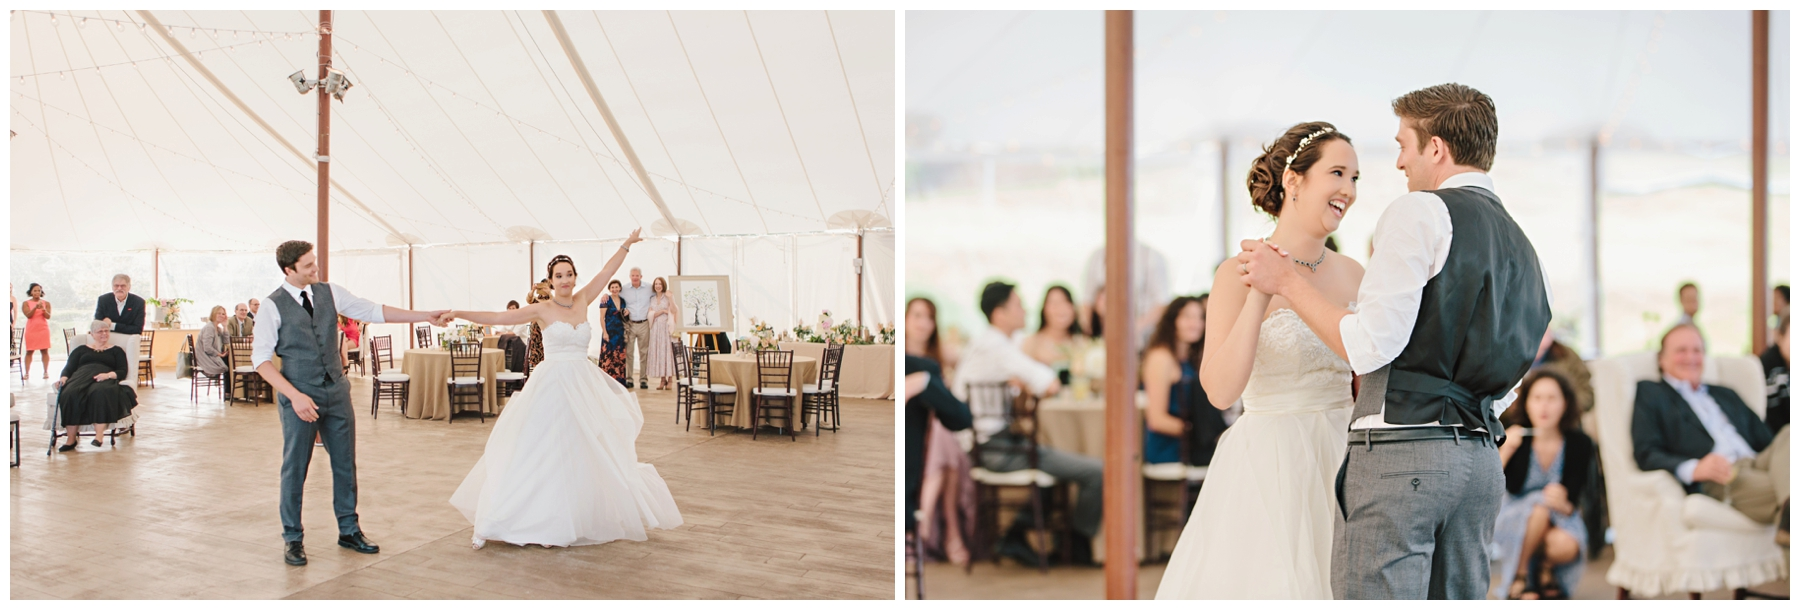 MaineWeddingPhotographer_FrenchsPoint_StocktonSprings_ocean_coast_NewEngland-062